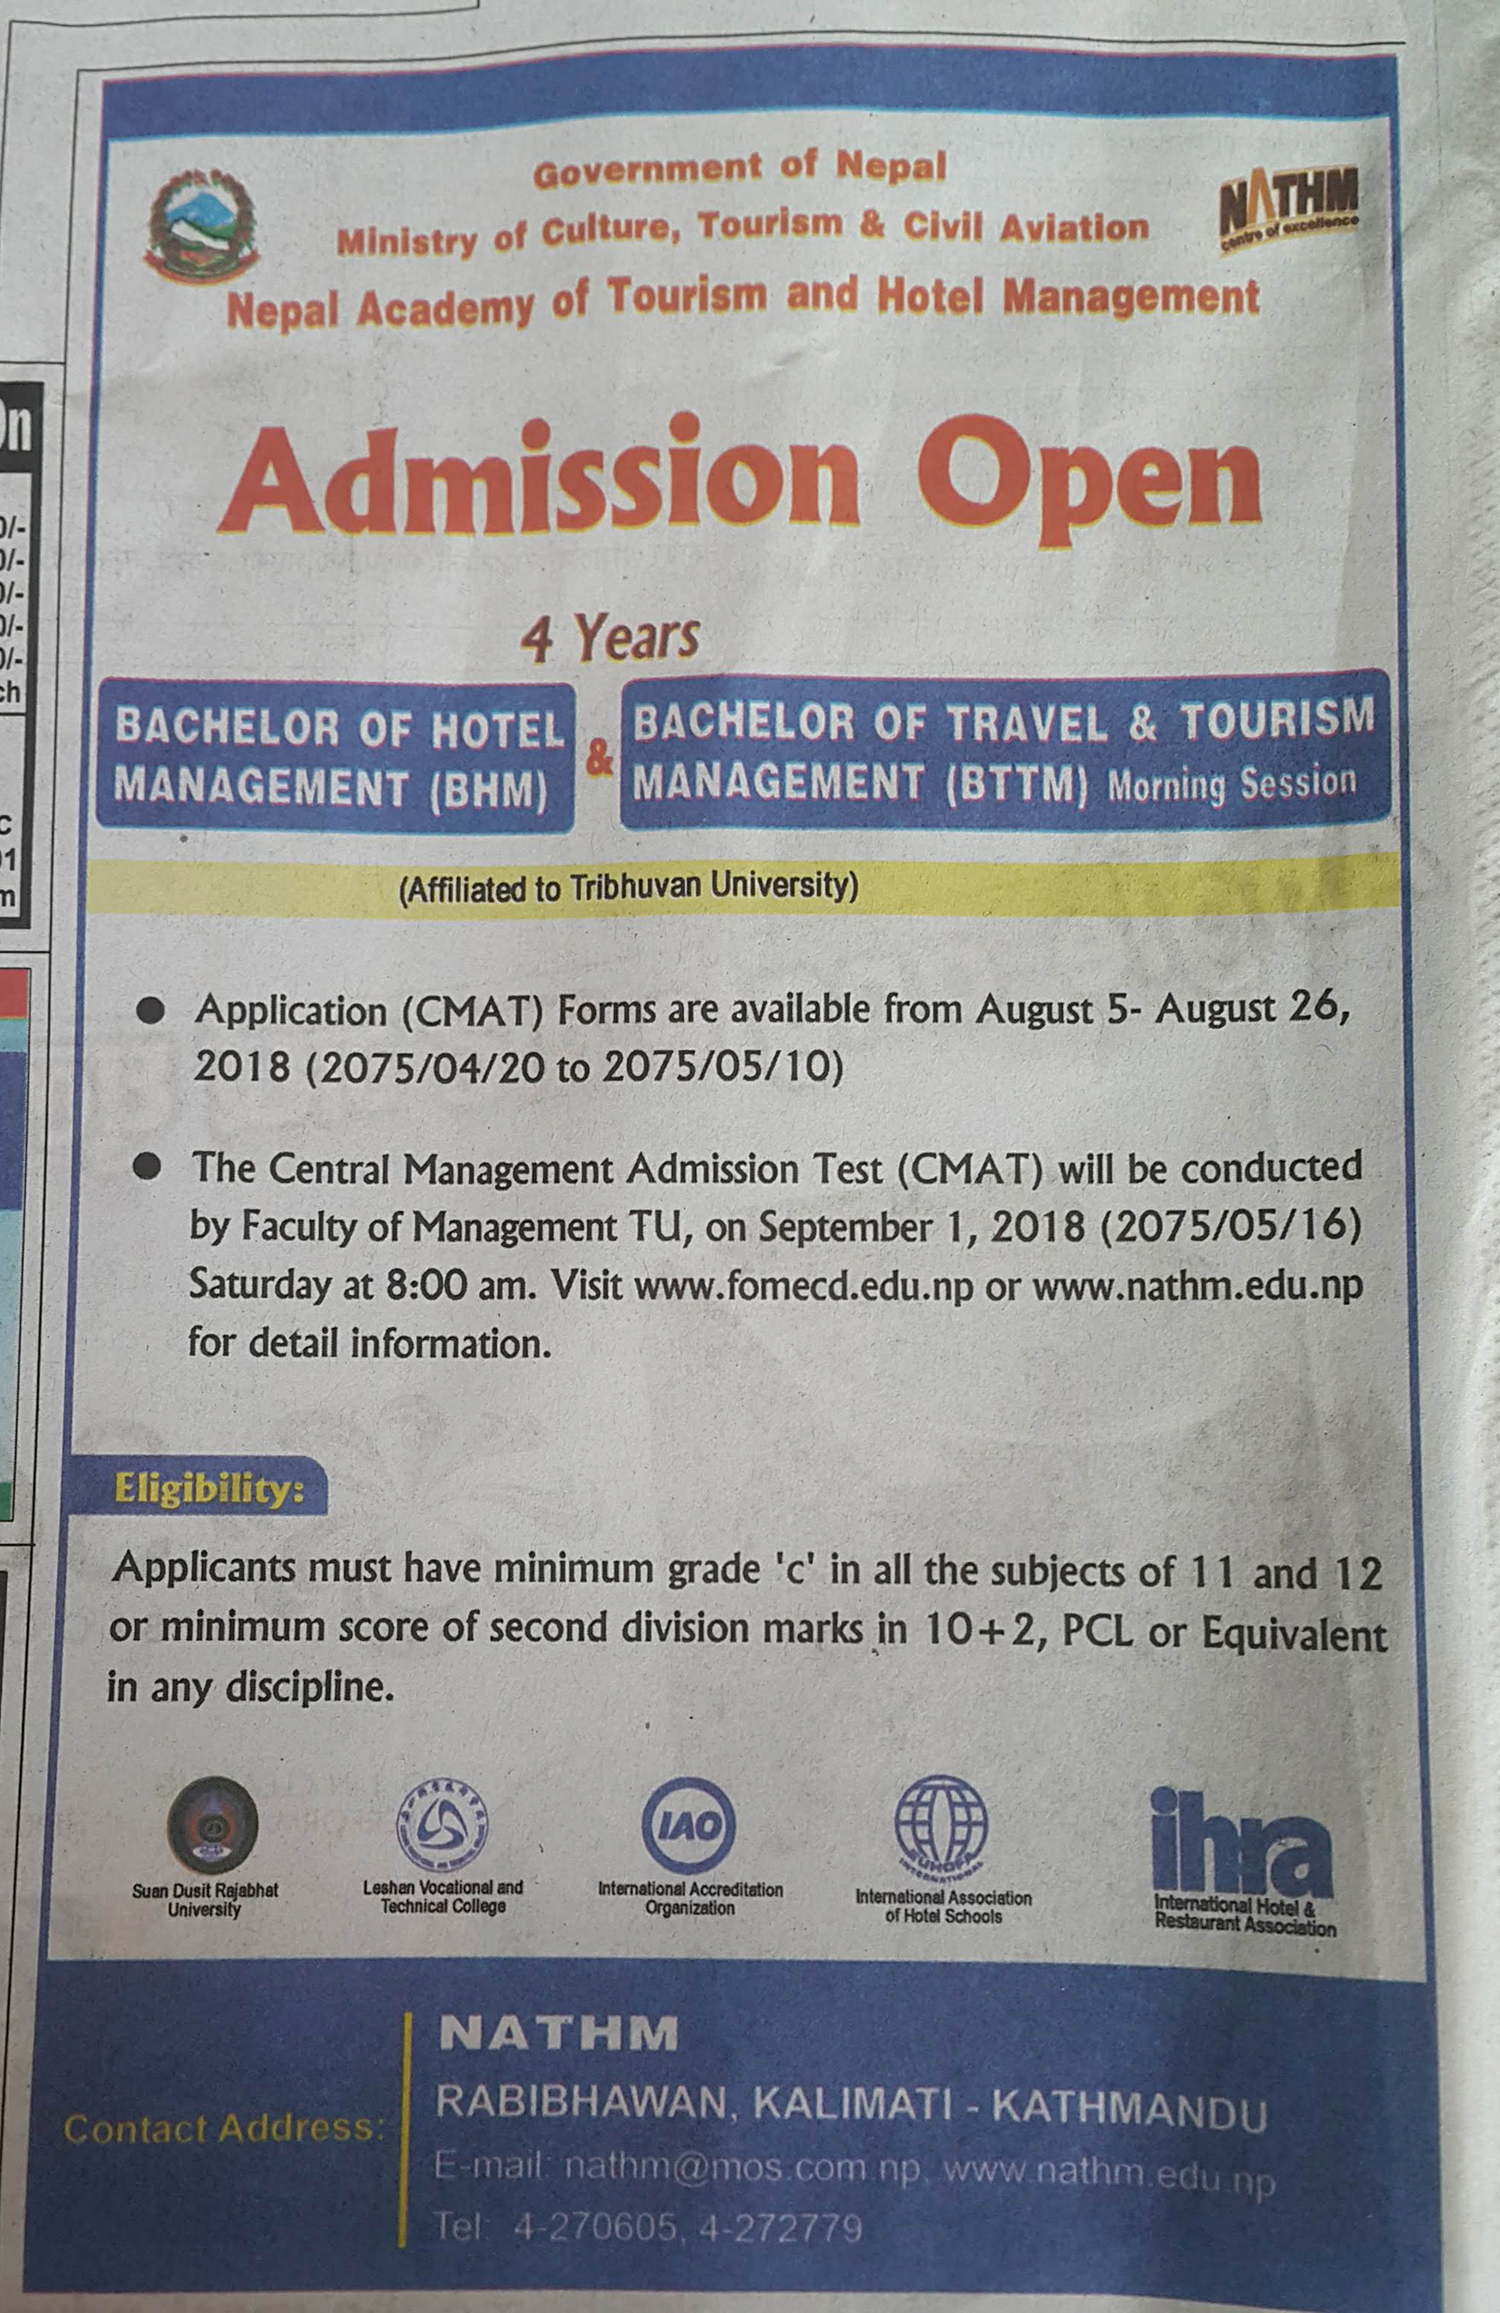 NATHM announces admission for BHM and BTTM courses - Tourism